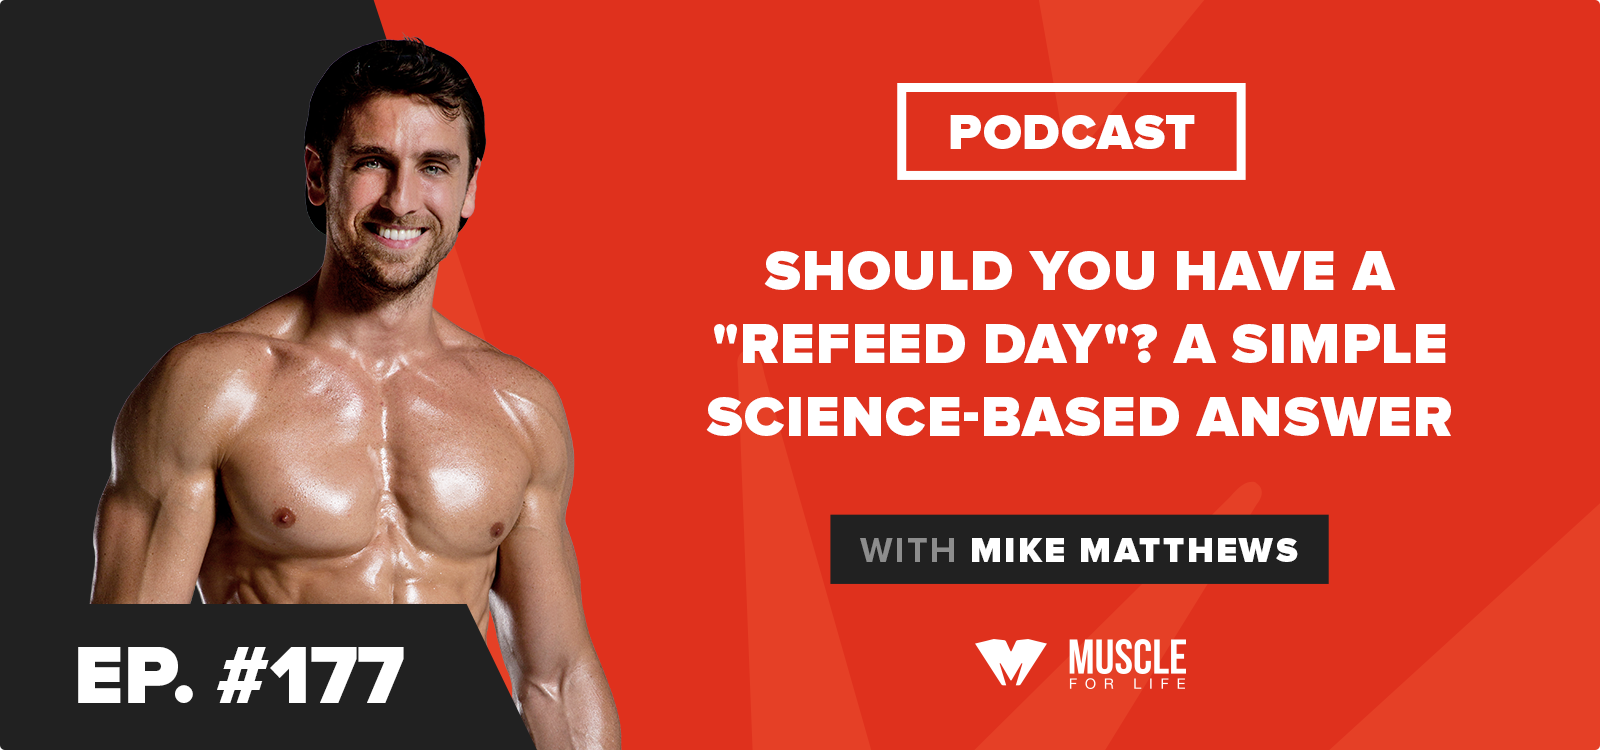 "Should You Have a ""Refeed Day?"" A Simple Science-Based Answer"